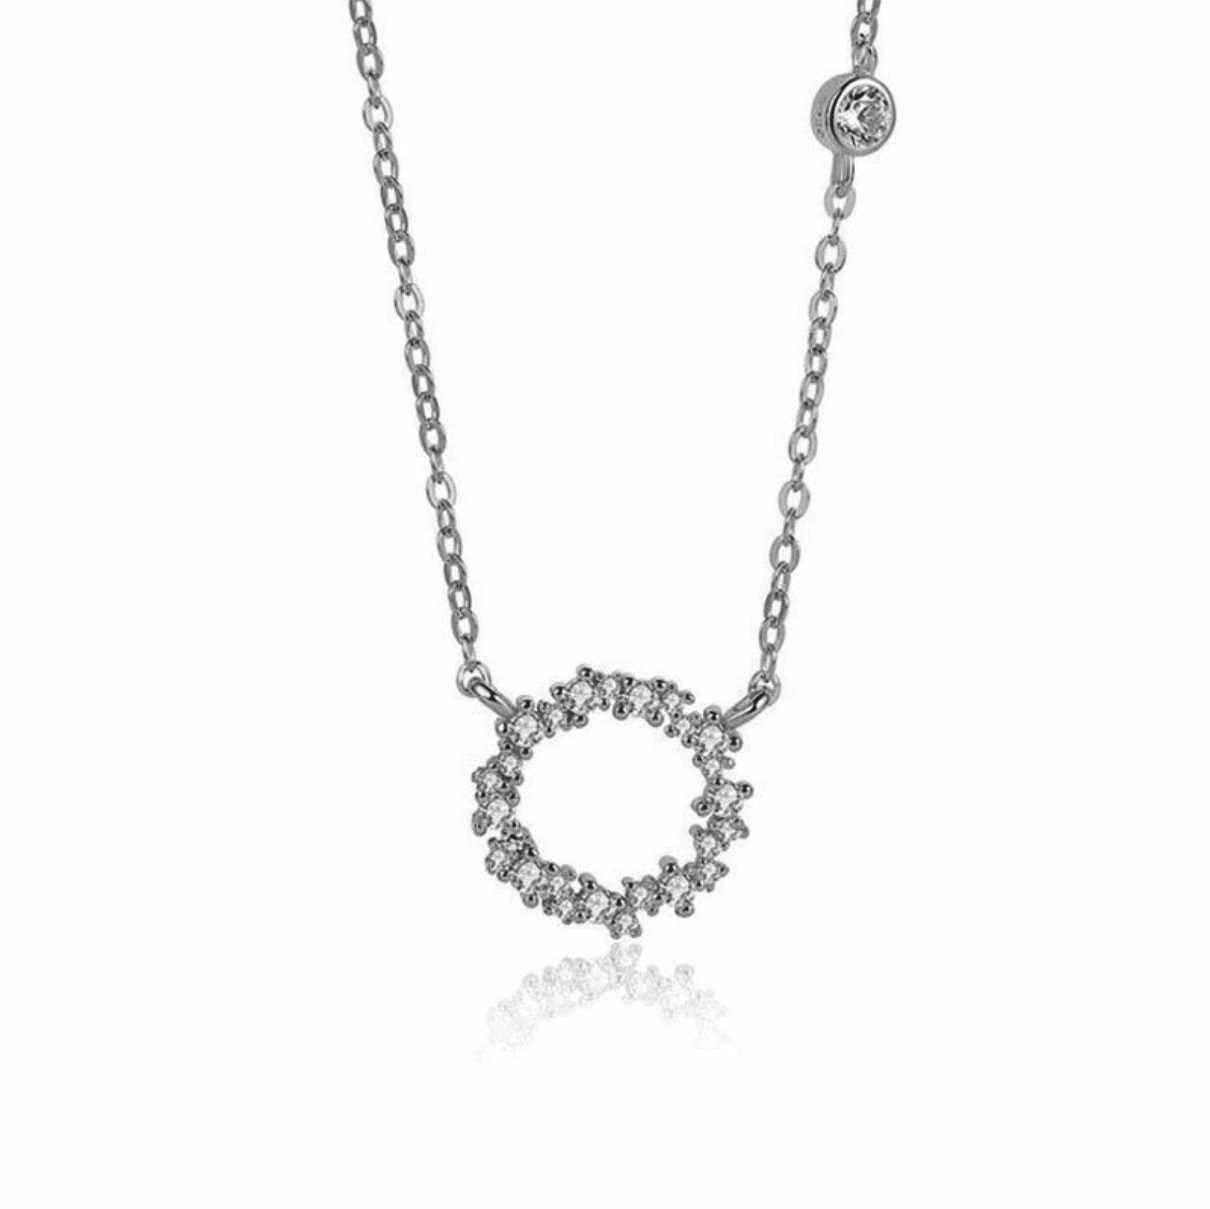 CZ Encrusted Eternity Necklace